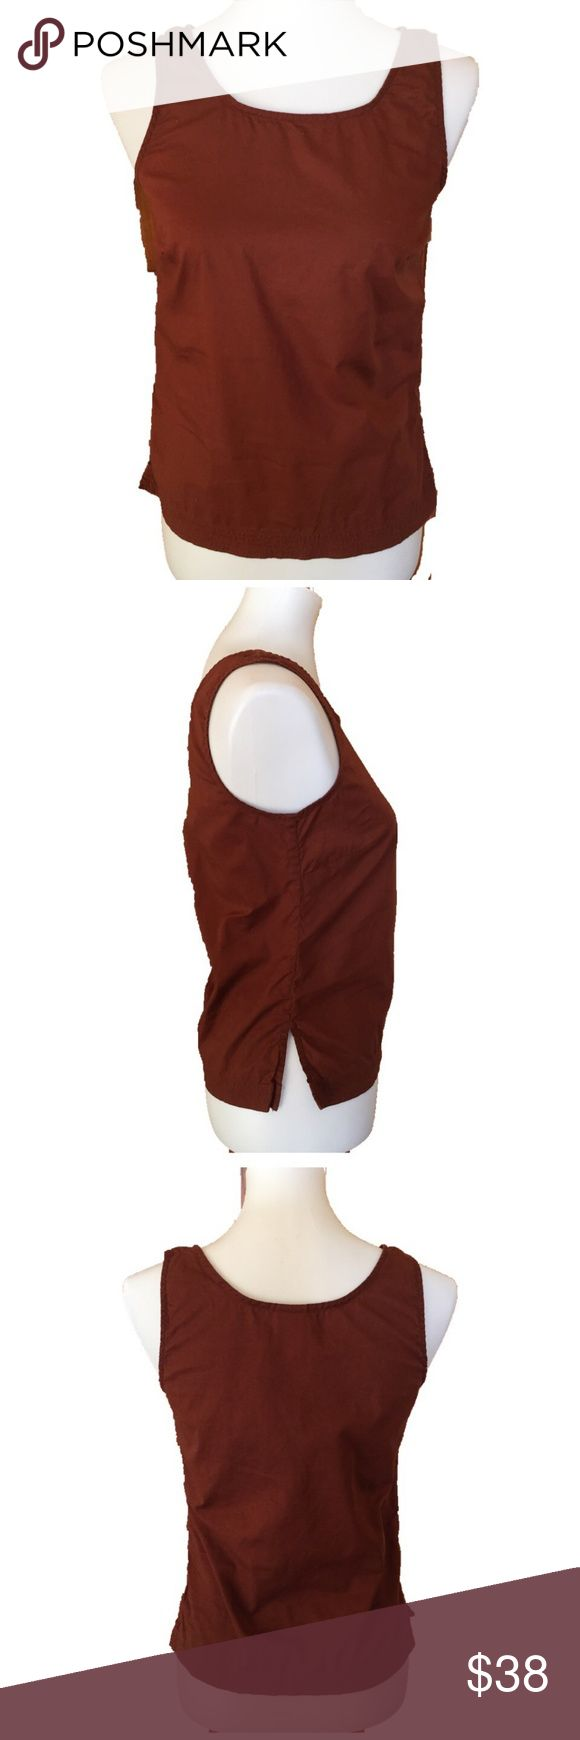 """Patagonia Rust Brown Cotton Sleeveless Cami Size 6 Sleeveless rust brown Cami by Patagonia. 100% organic cotton. Lightweight, split hem with nice stitching.  Size 6, measurements are flat and approximate: Underarm to underarm 16 1/2"""" Length 22"""" Patagonia Tops Camisoles"""